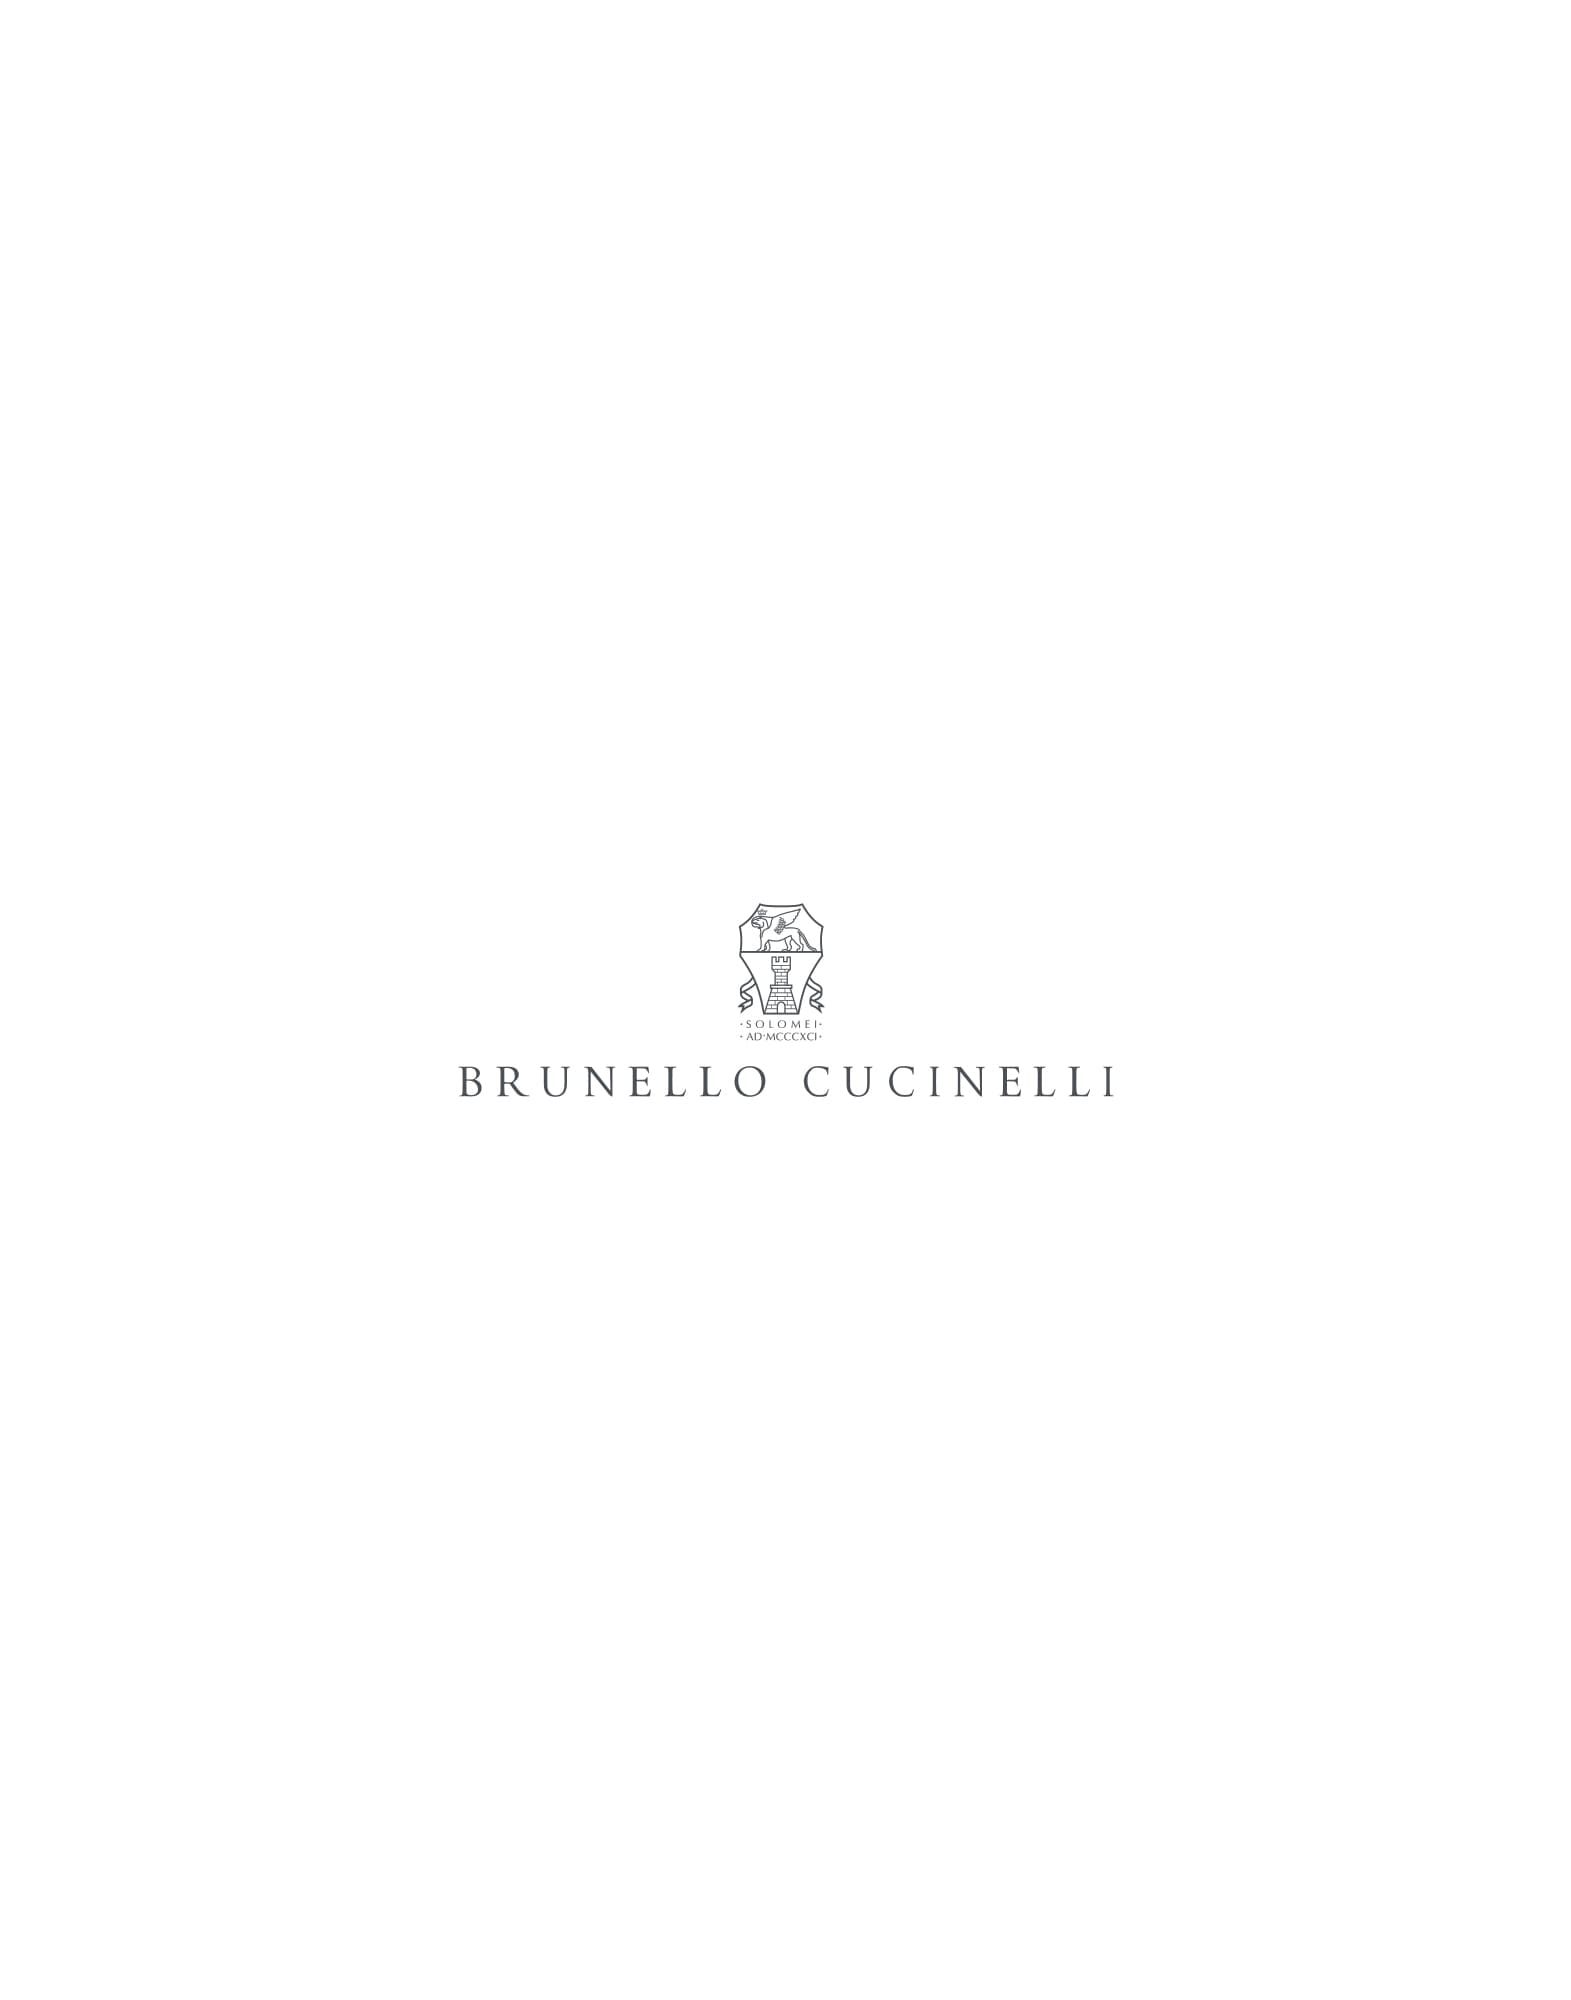 Set Tris Walnuss Lifestyle - Brunello Cucinelli